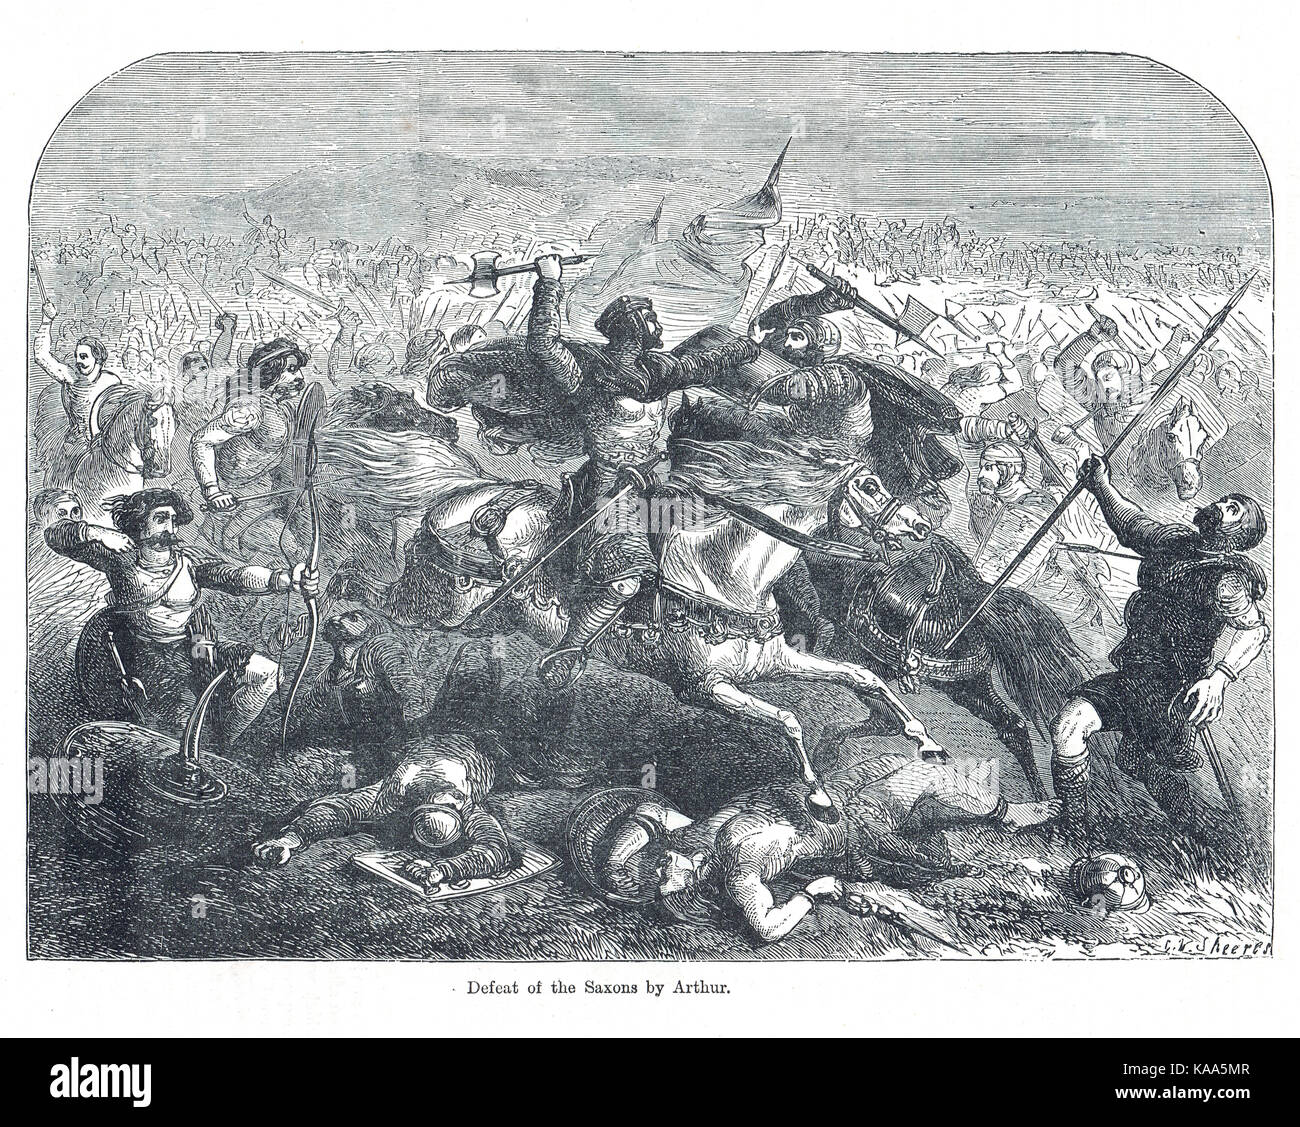 The defeat of the Saxons, led by king Arthur, Battle of Badon - Stock Image